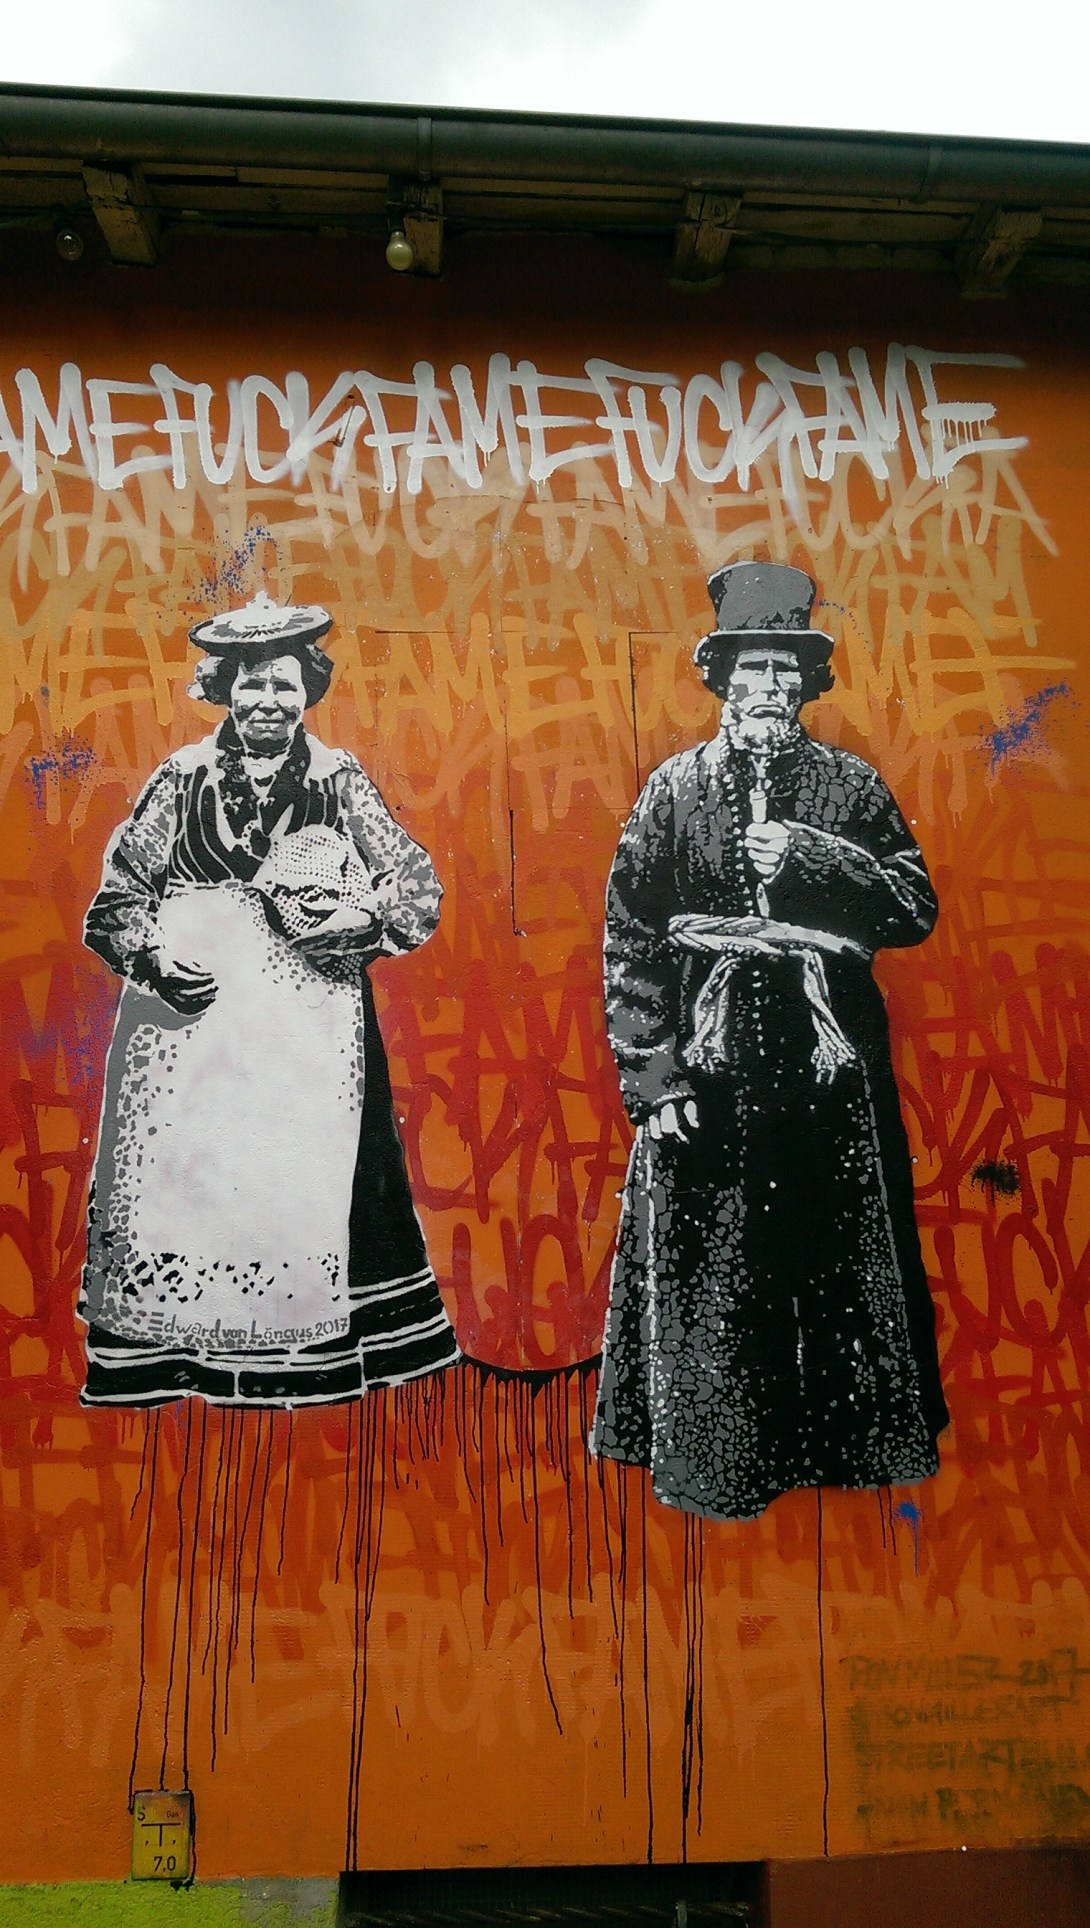 Street art Berlin Mauerpark be kitschig blog